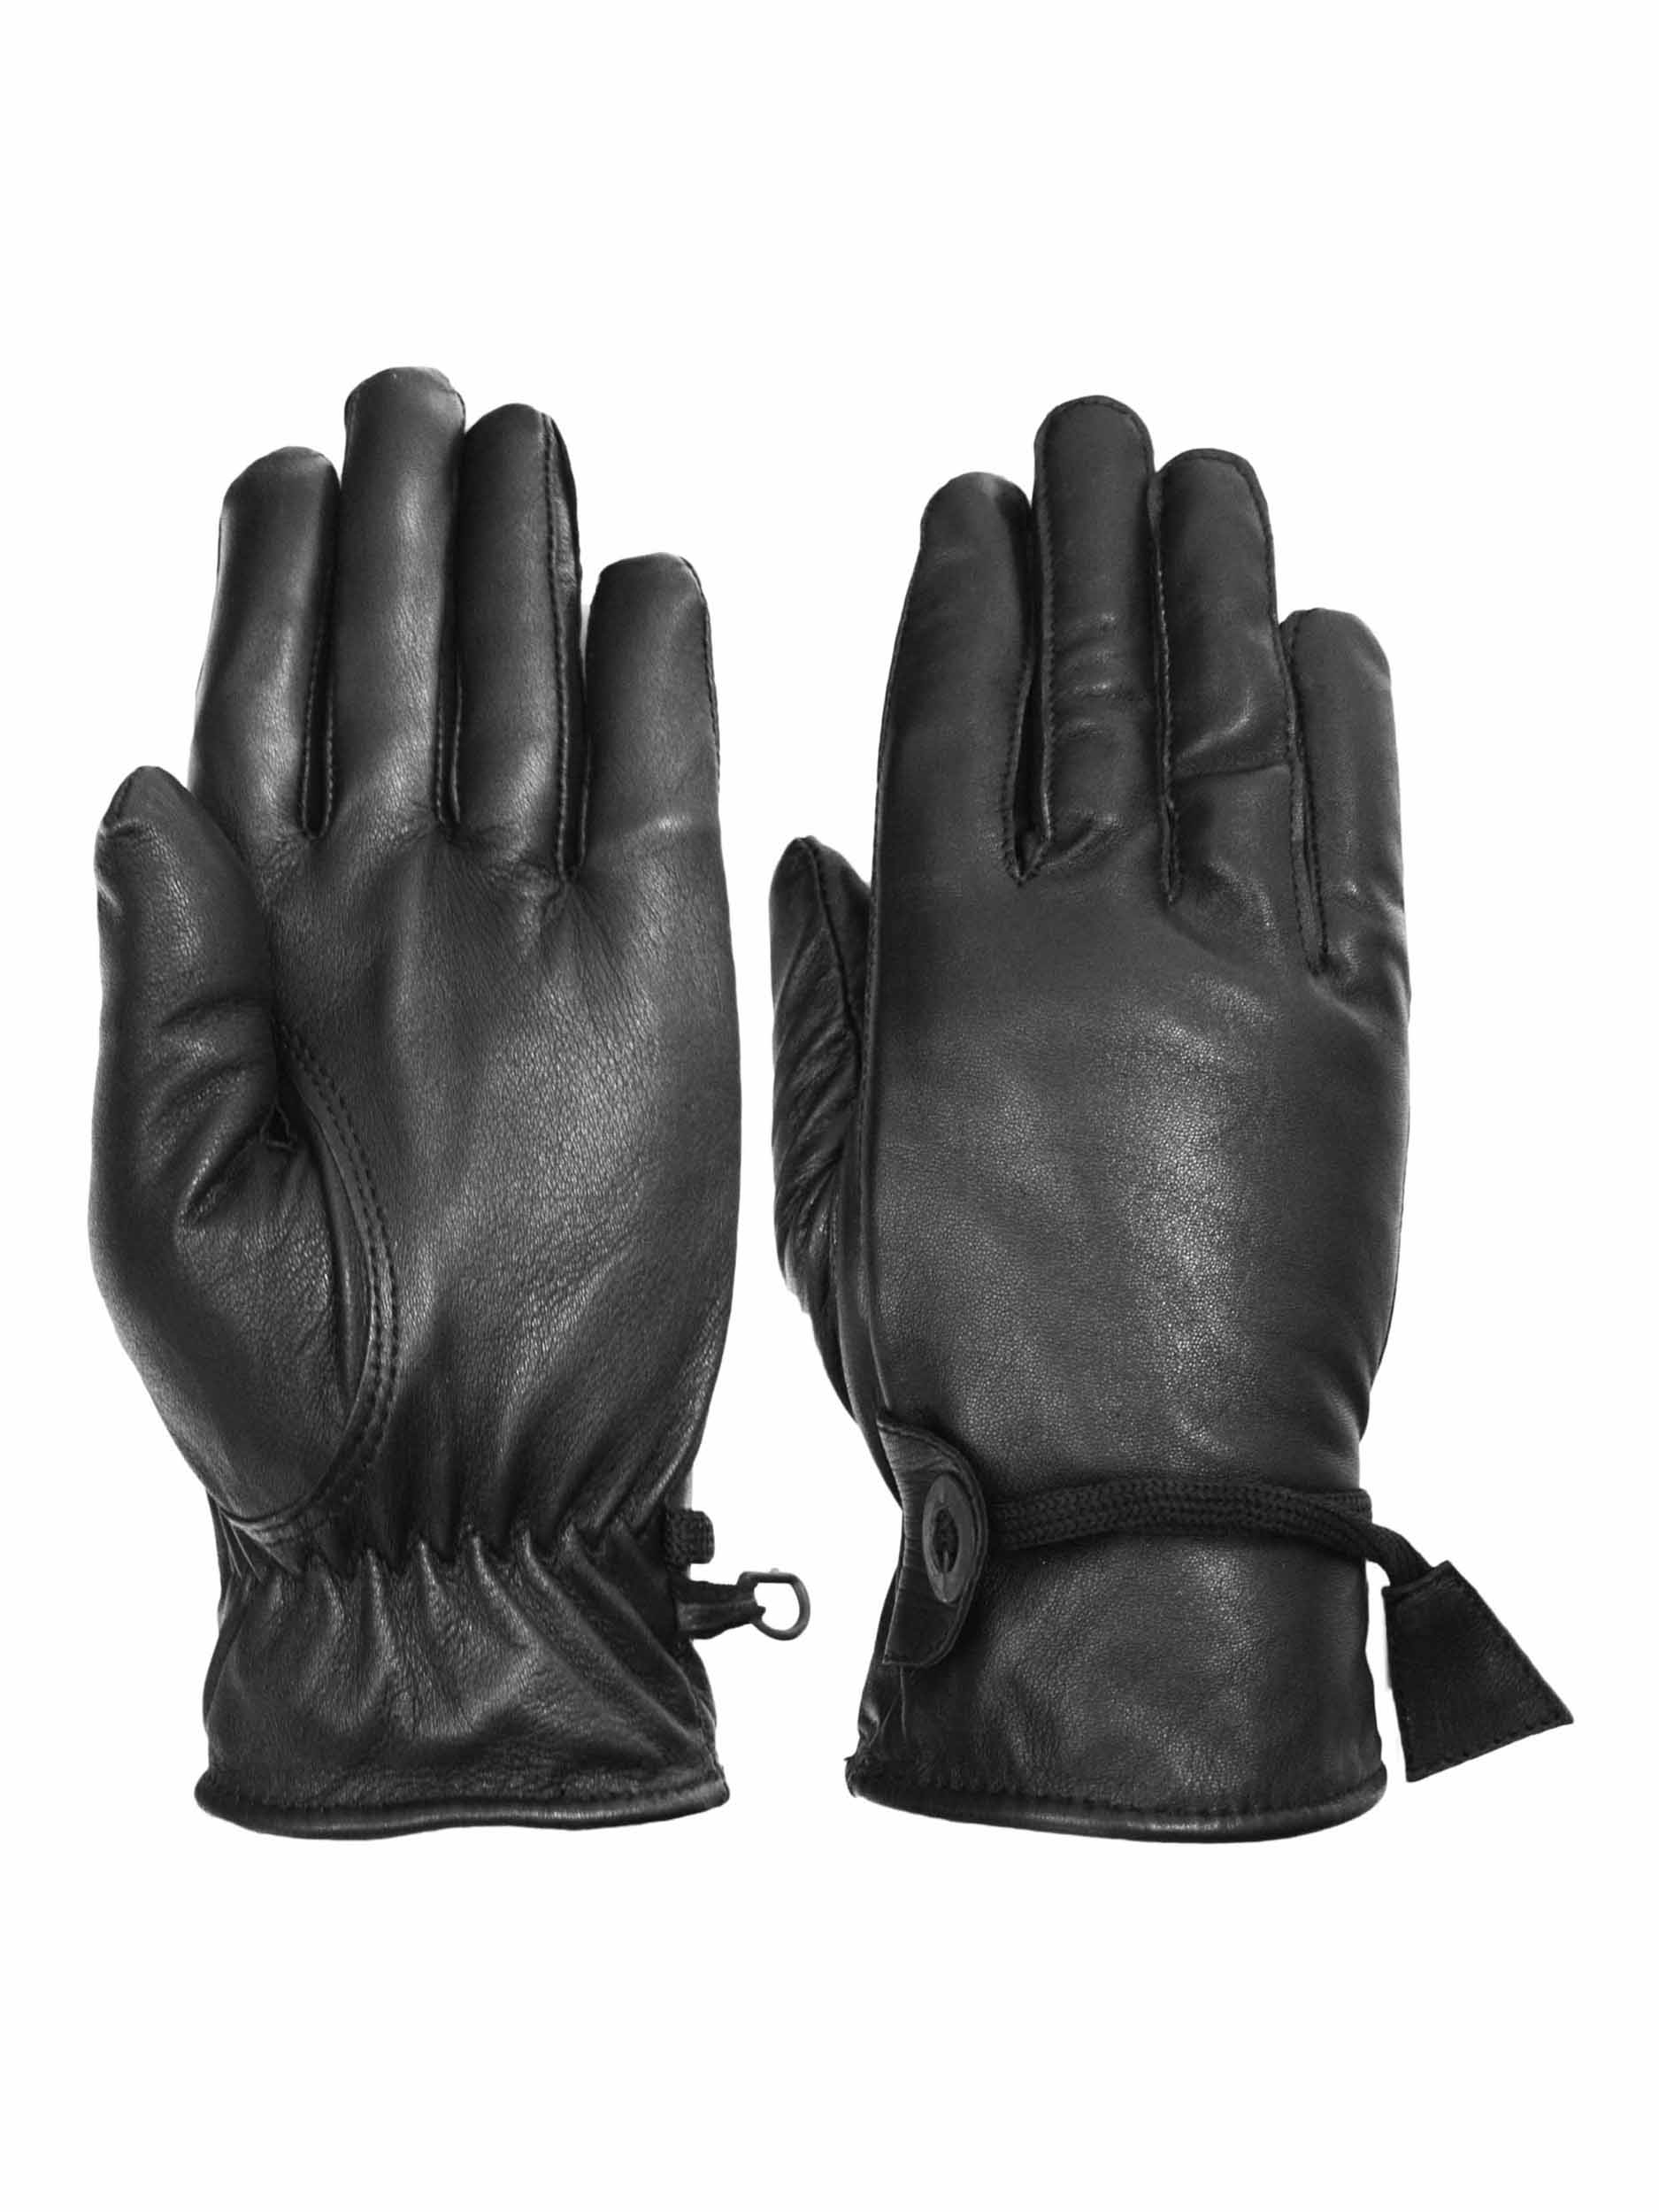 Vance-Leathers-Women-039-s-Premium-Lined-Motorcycle-Riding-Gloves-Black